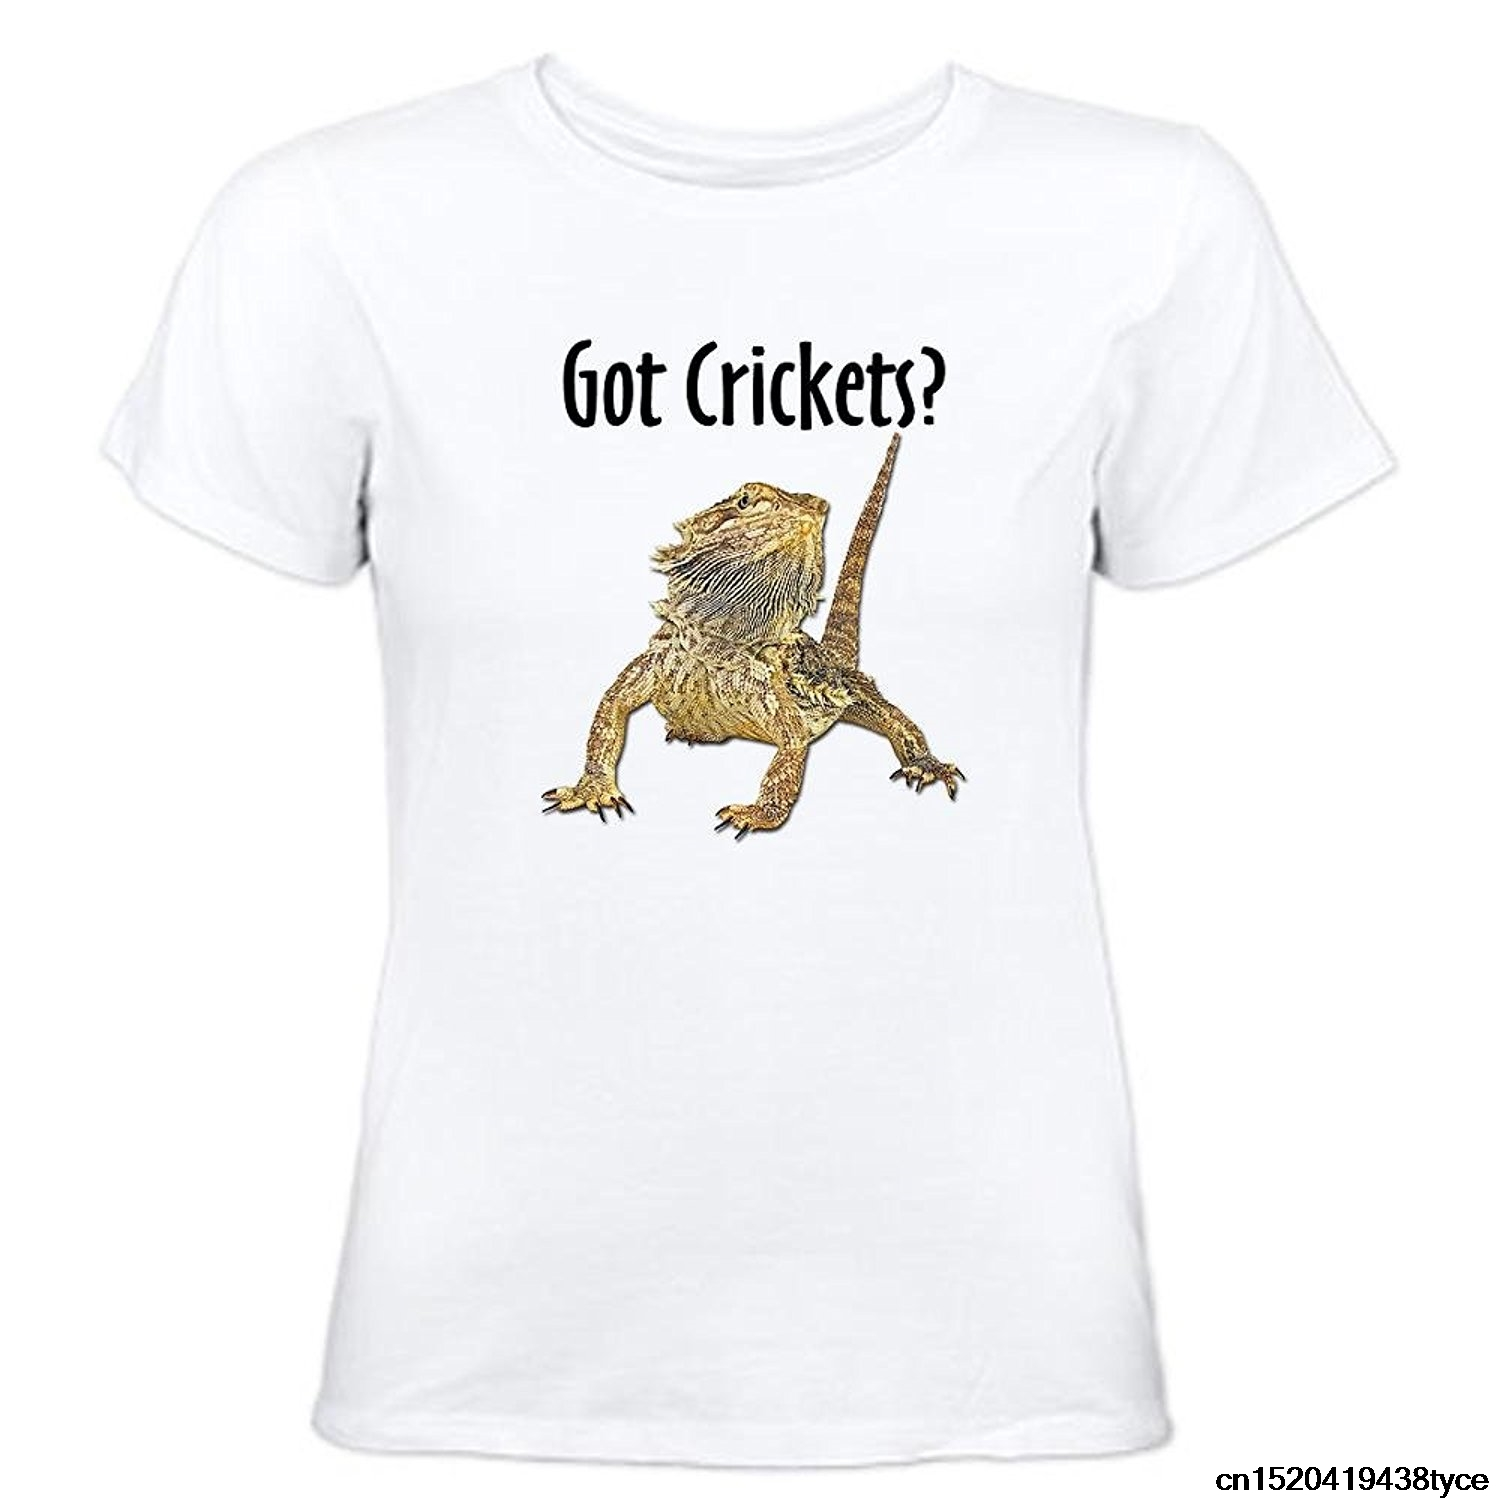 Jzecco 2017 New Arrival Bearded Dragon Got Crickets Women's Comfortable & Soft Classic Tee Cotton O-neck Short Sleeve Tops Tee